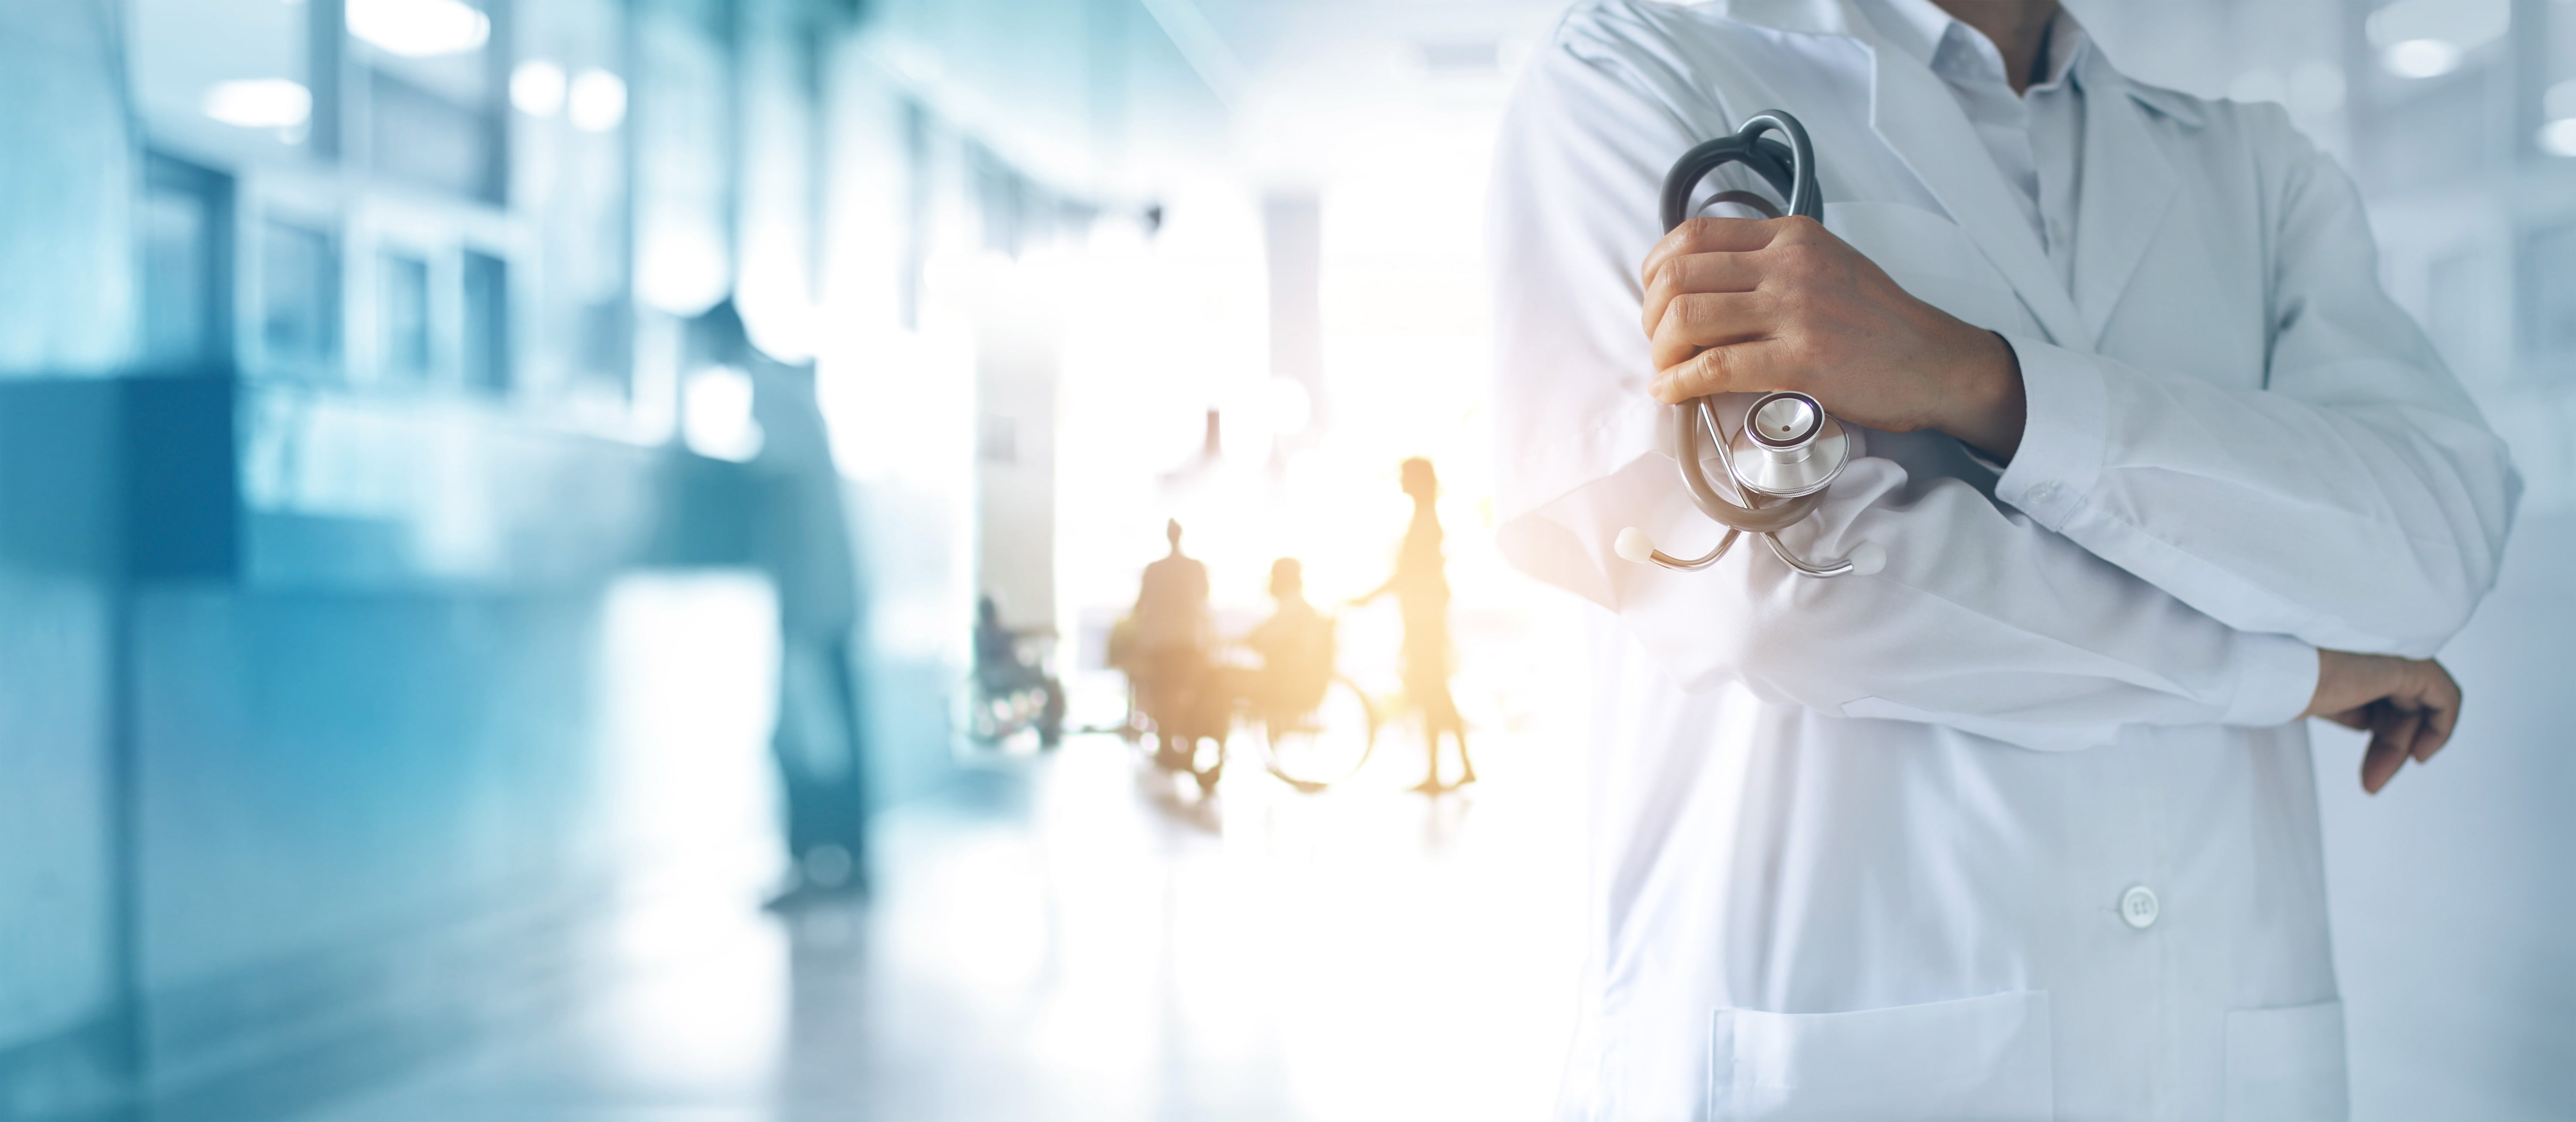 healthcare-medical-concept-medicine-doctor-with-stethoscope-hand-patients-come copy-min